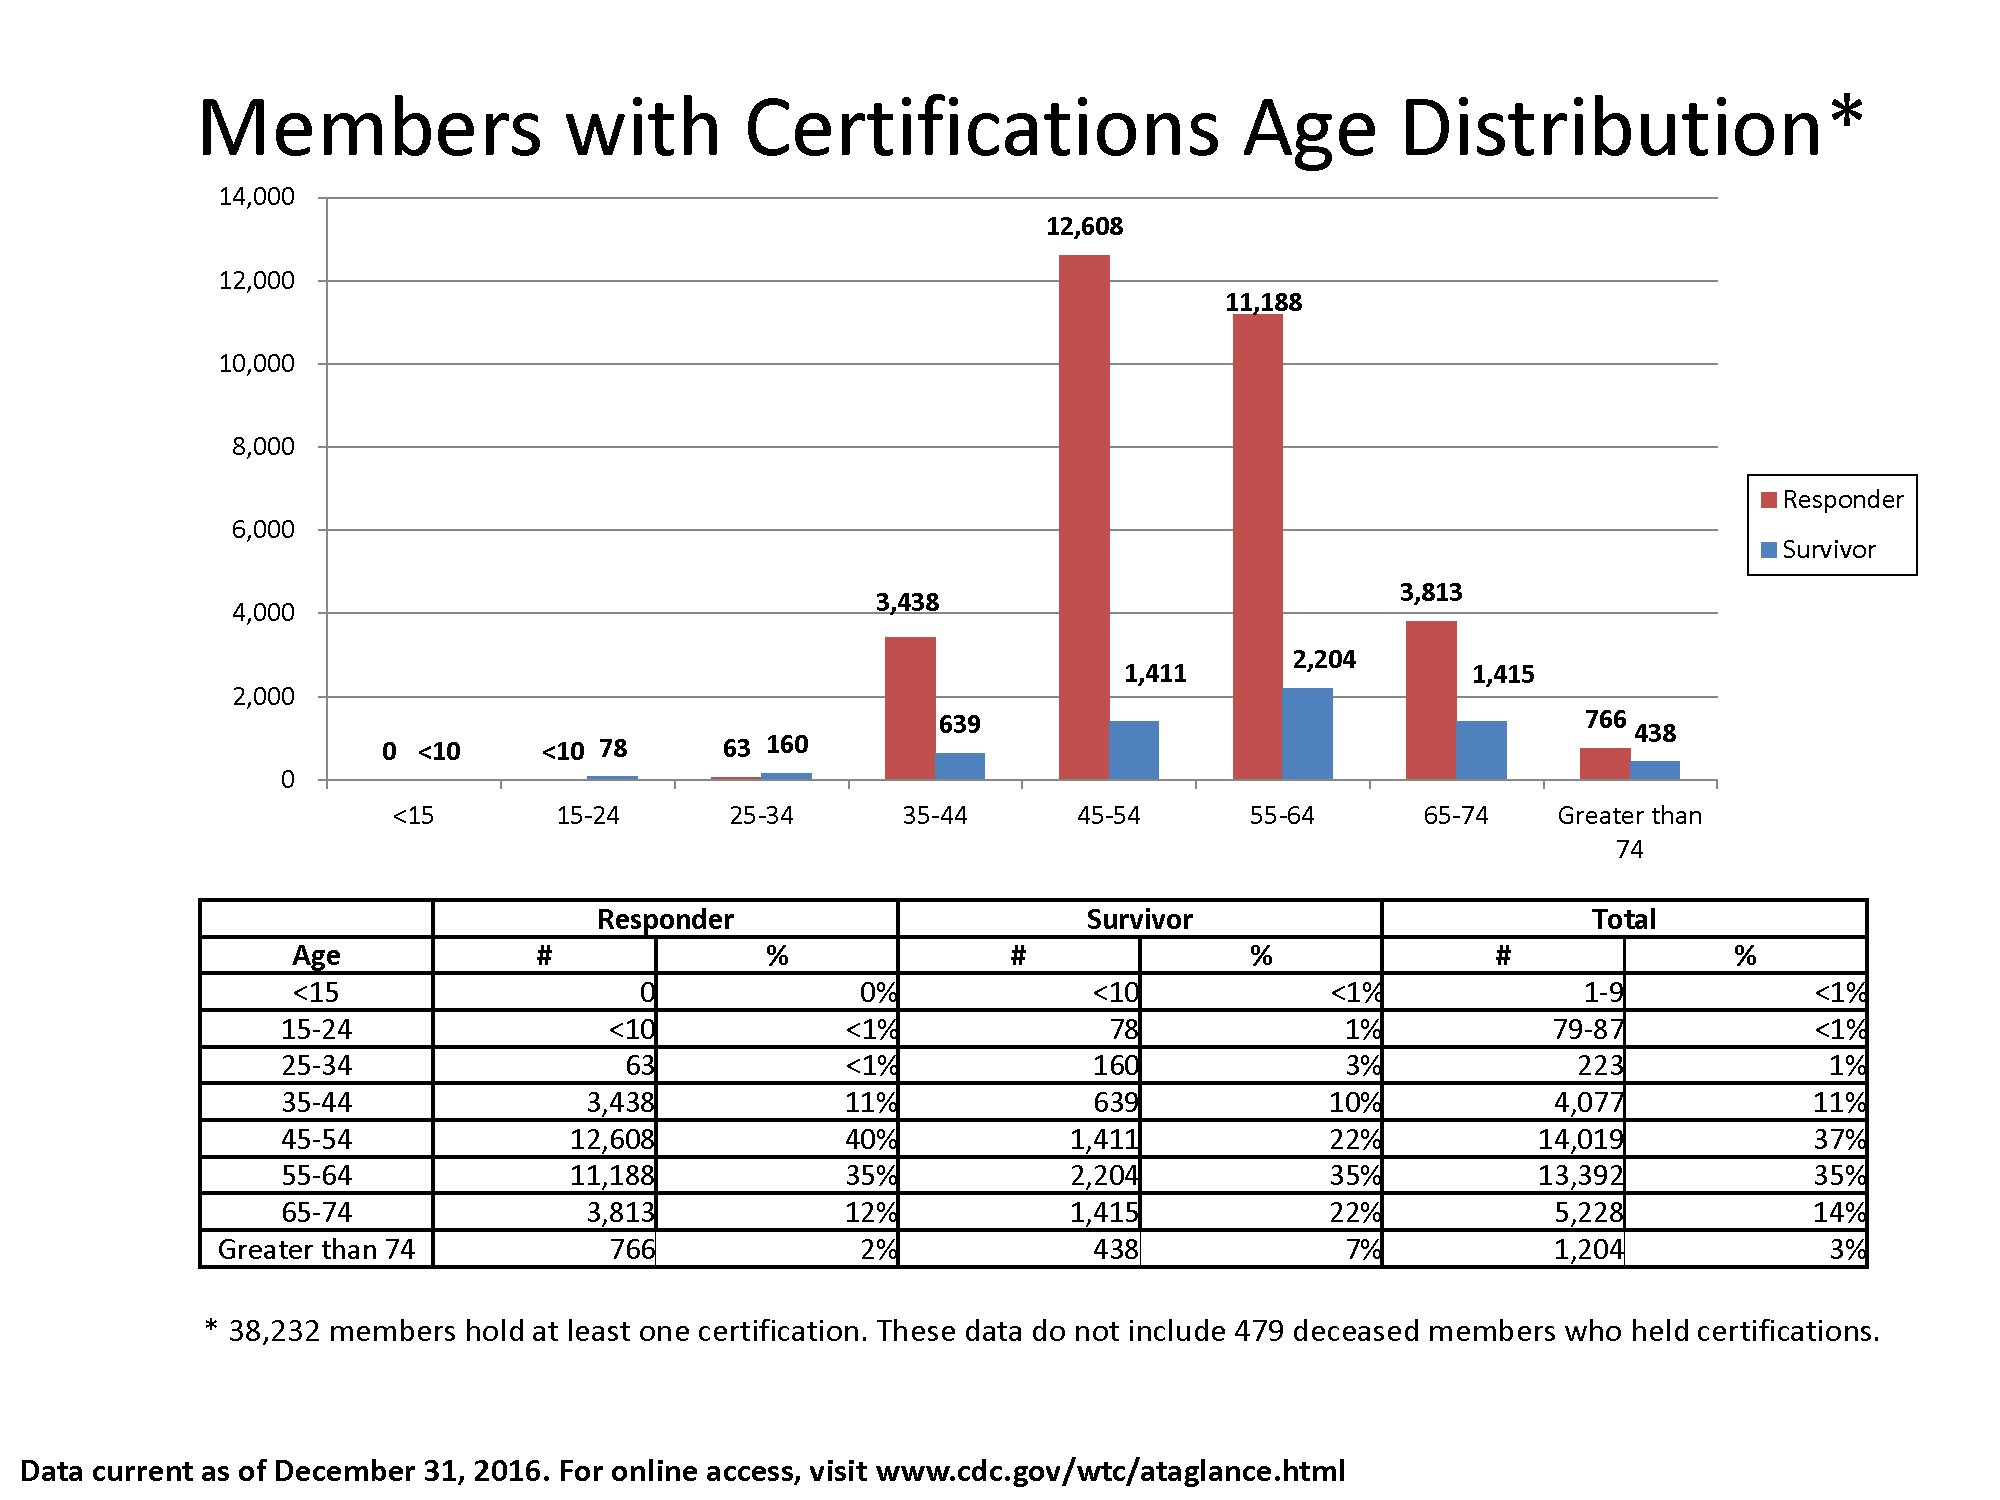 Bar chart of data in the table showing the number of members with certifications by Responder and Survivor and age bracket.